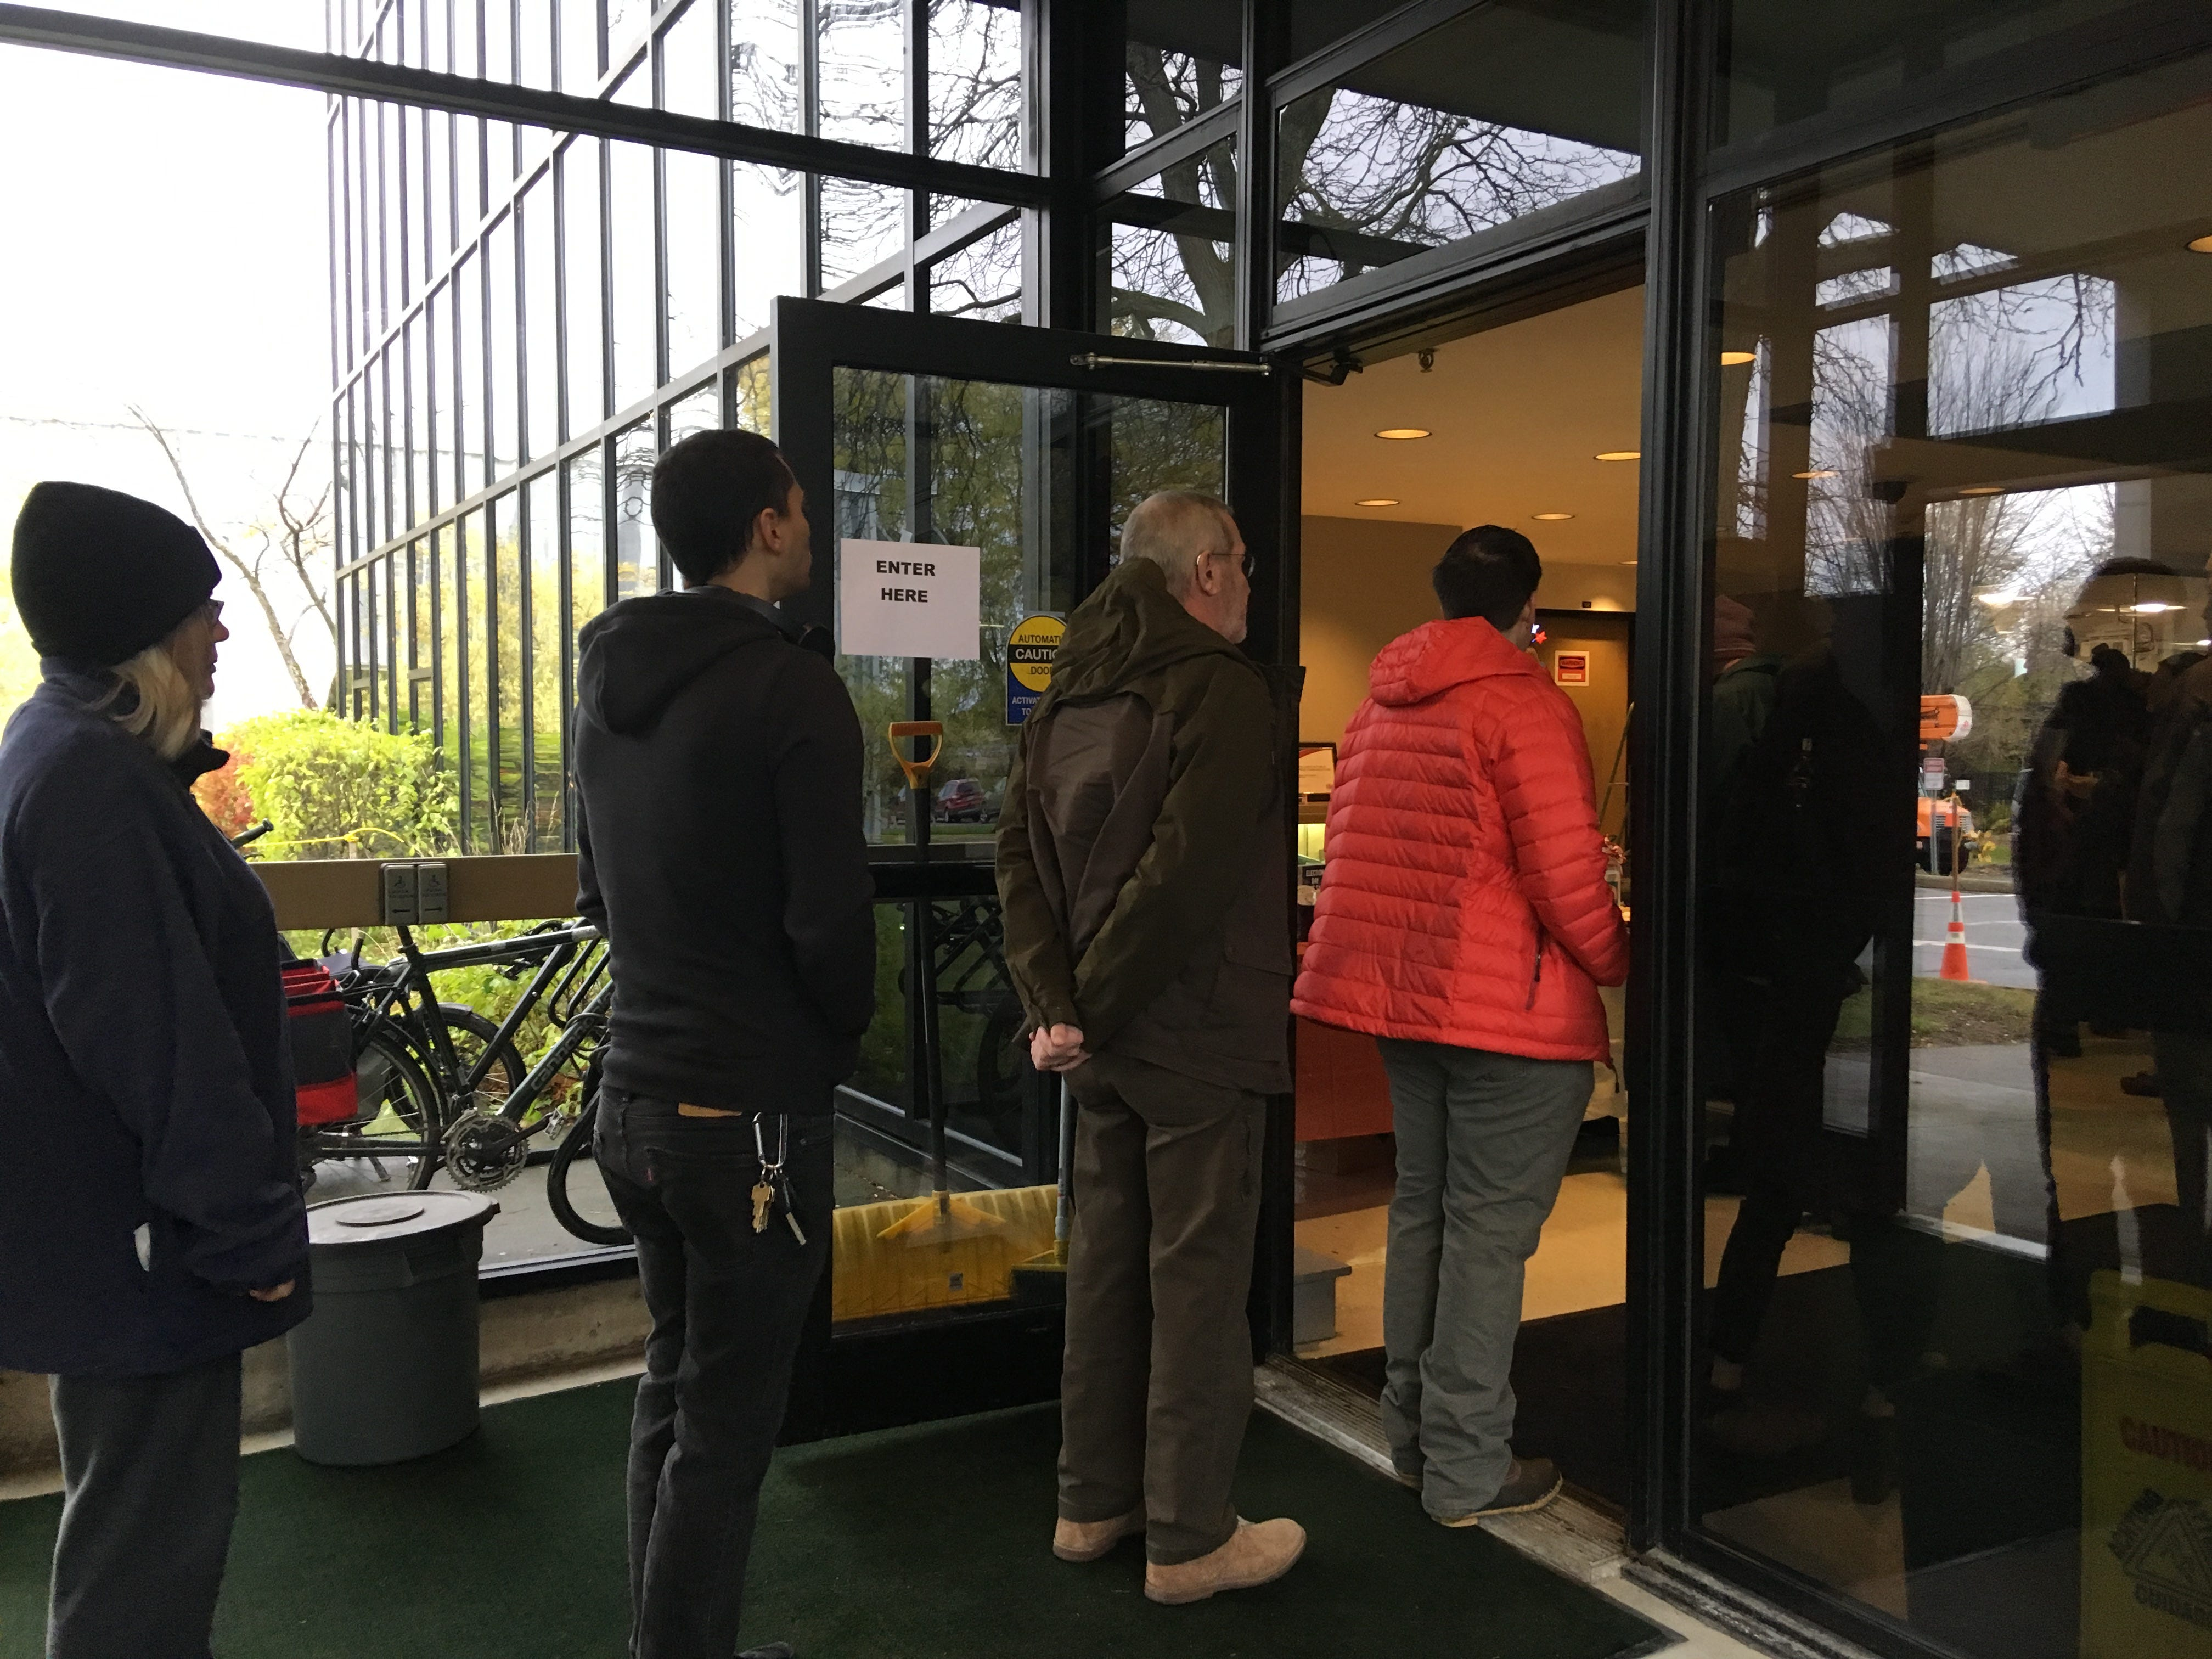 Burlington voters flock to the Ward 5 polling station at Burlington Electric Department around 8:30 a.m. on Tuesday, Nov. 6, 2018. The elections inspector said it's busier than usual.